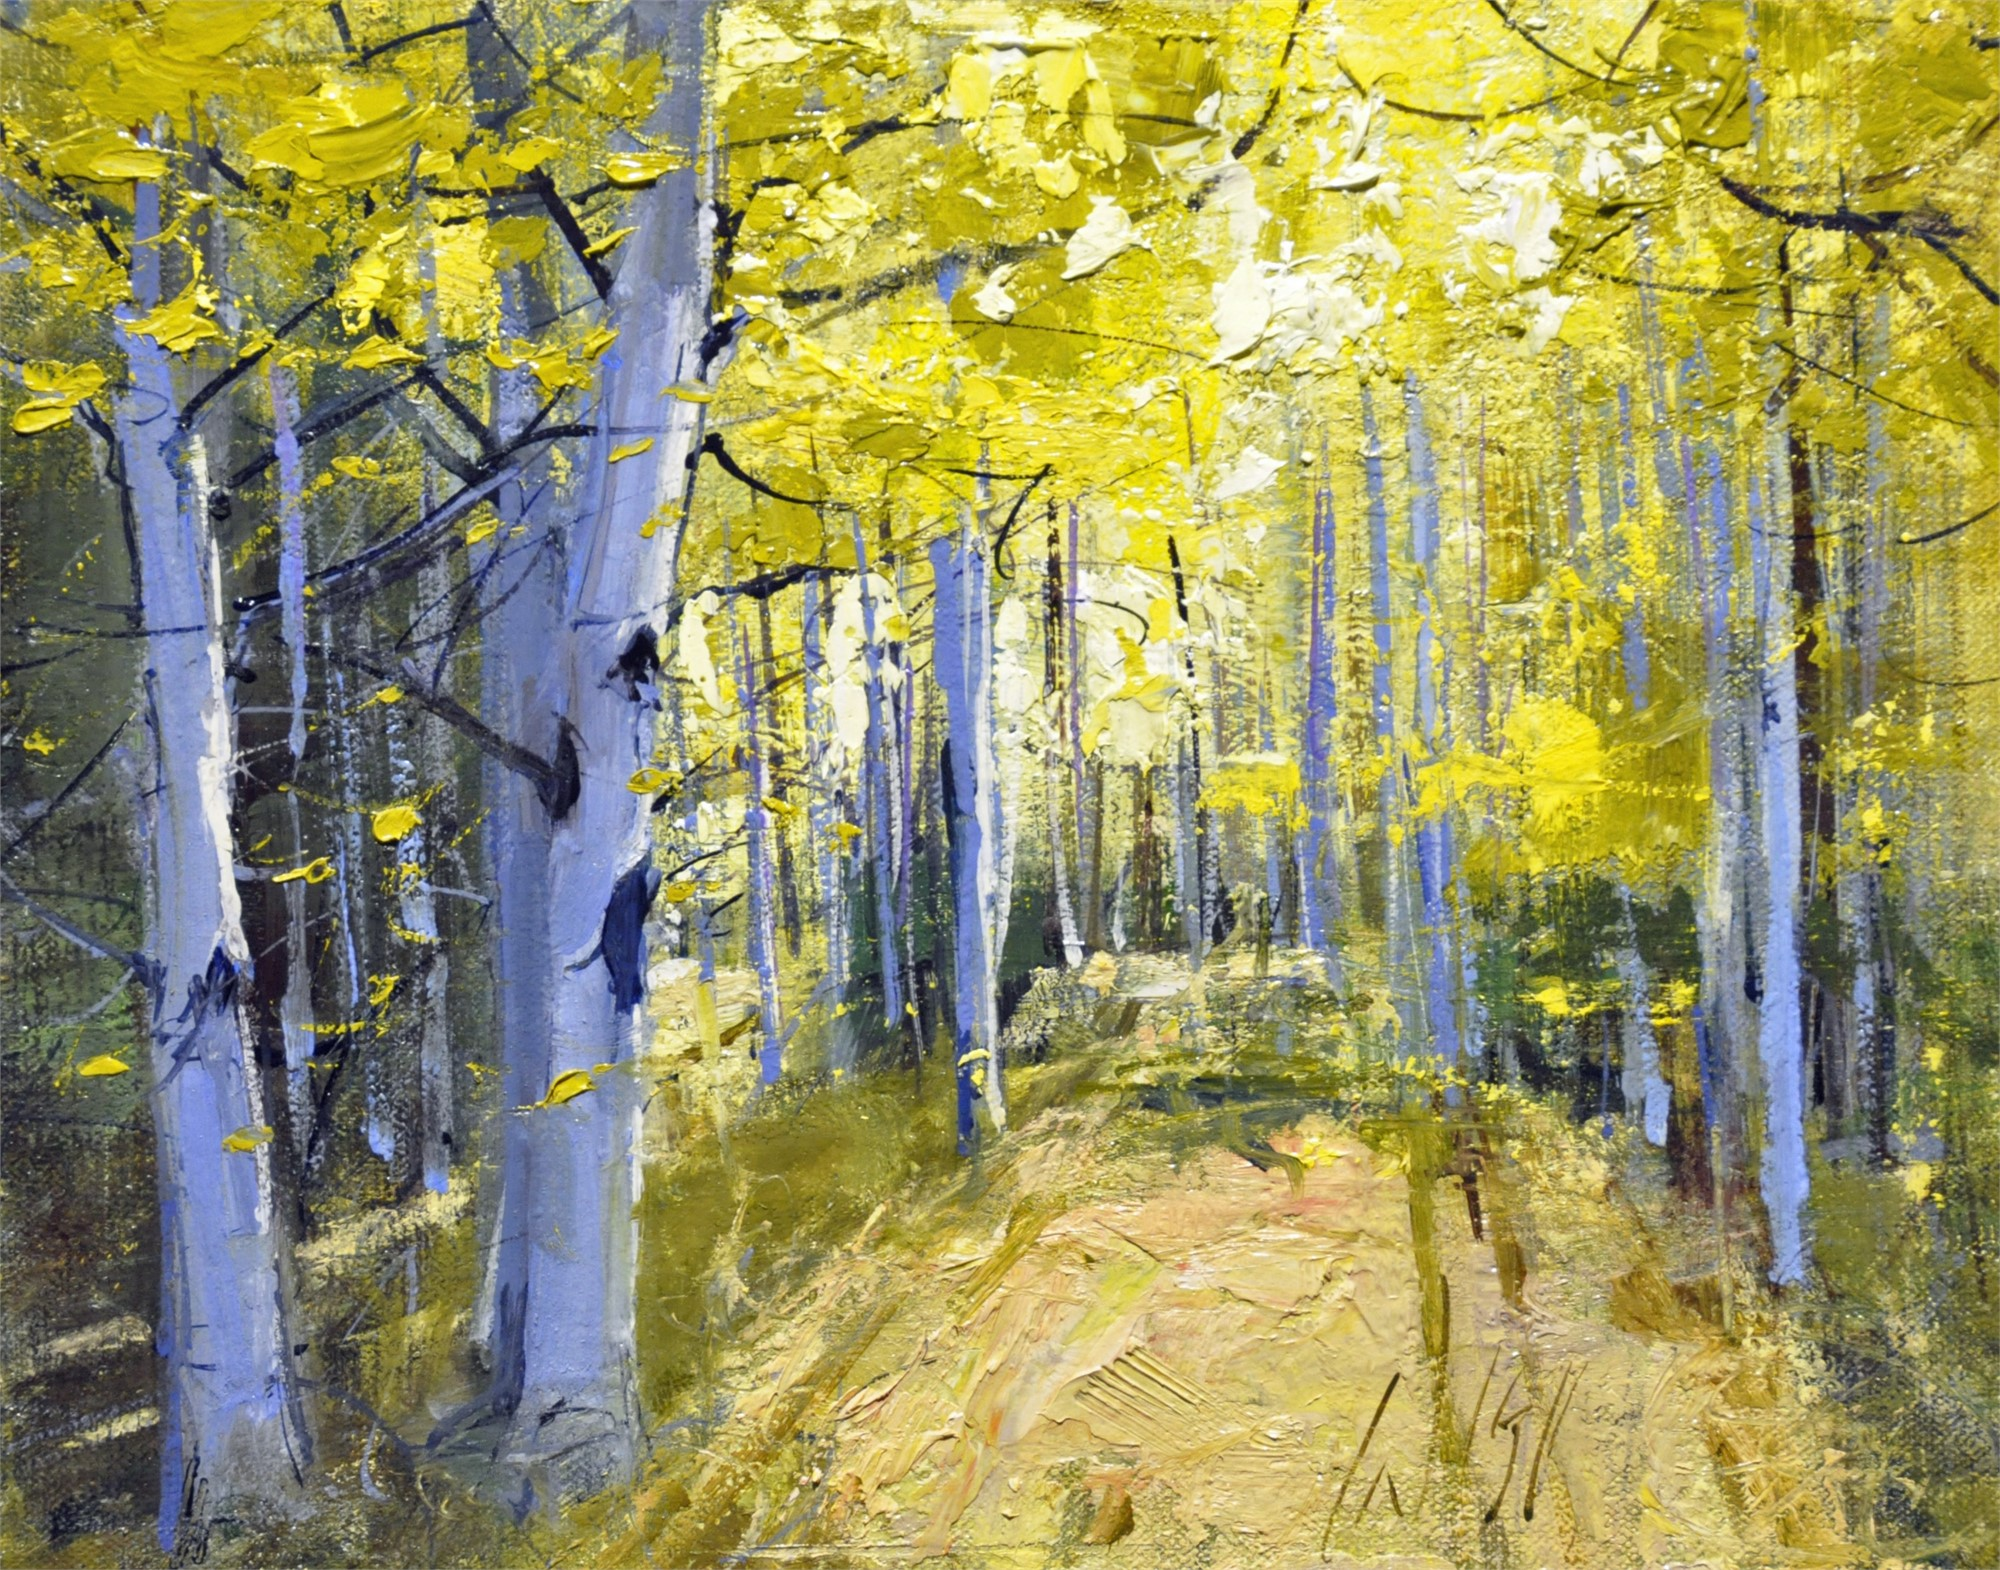 Yellow Woods II by Mike Wise